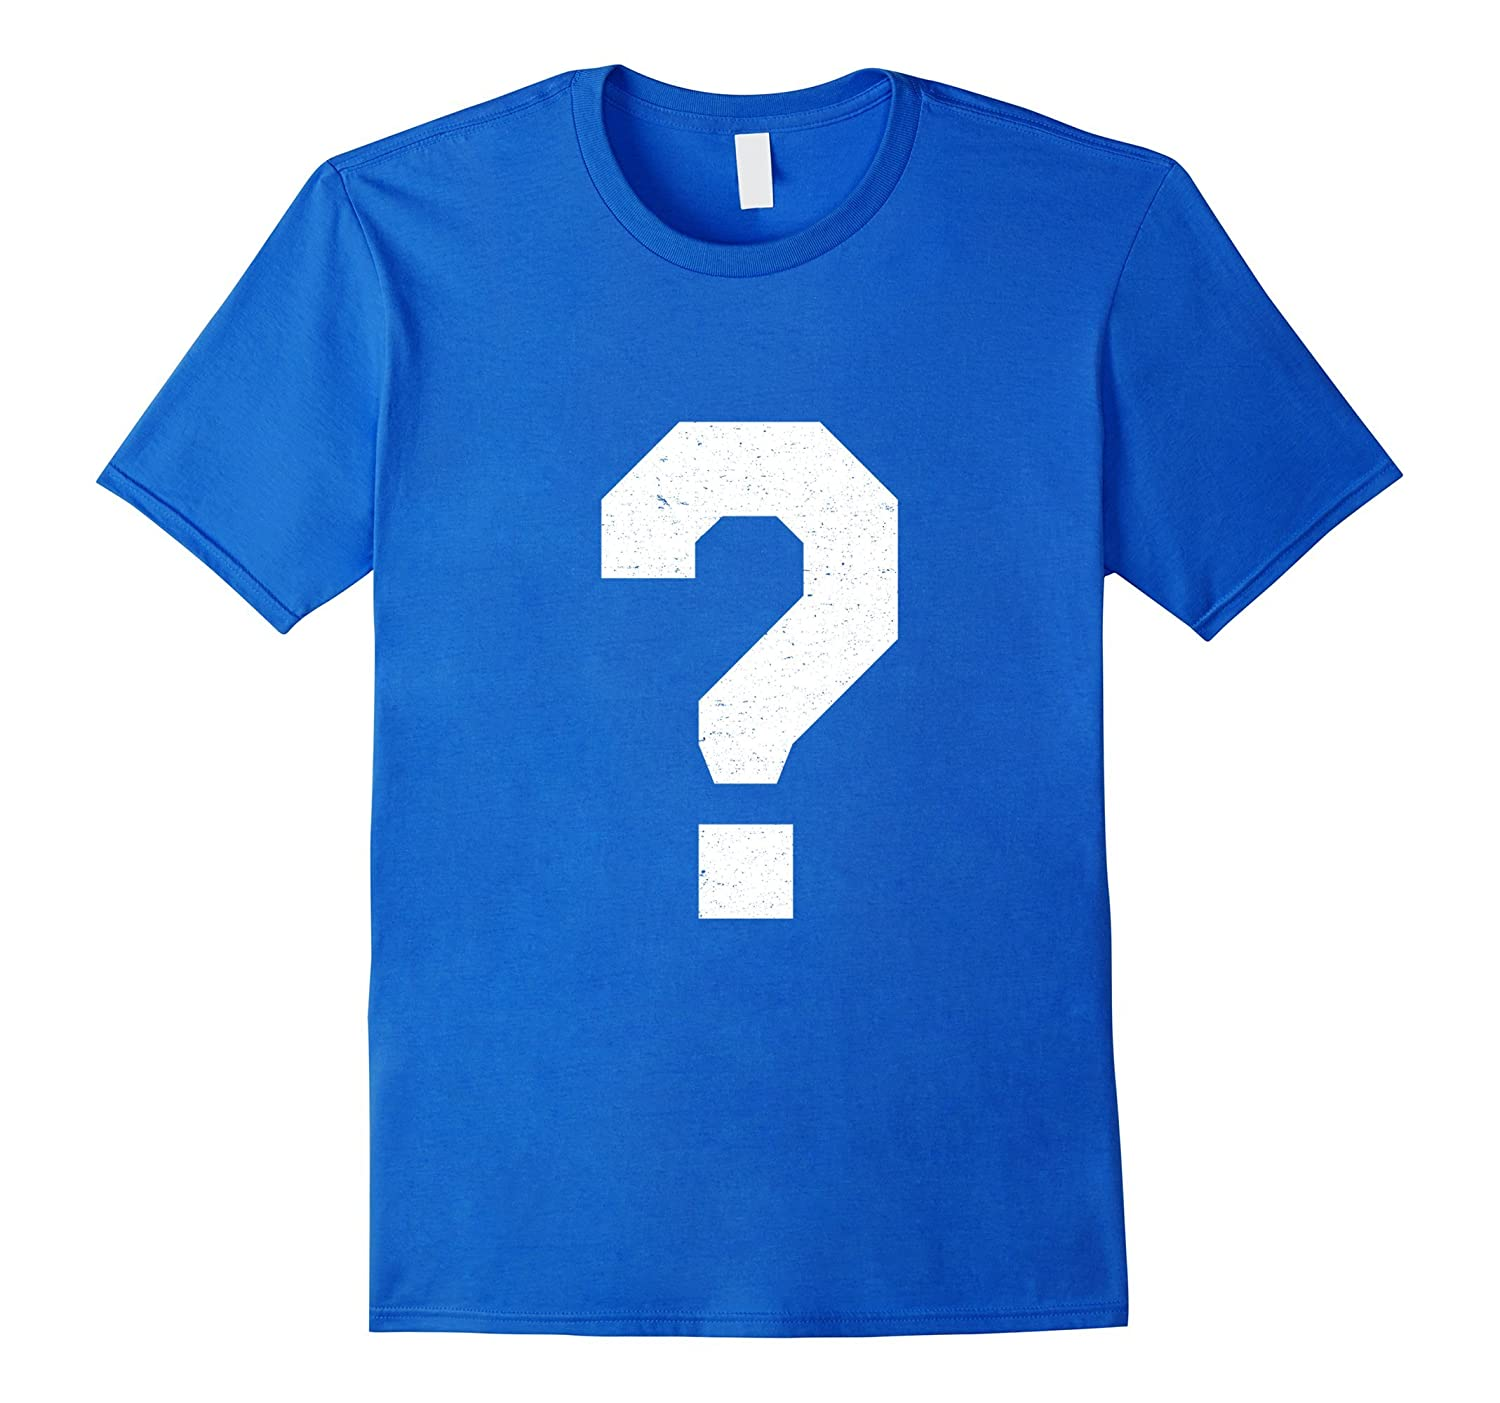 ?: Question Mark Monogram Initial Spelling Tee Shirt-TH